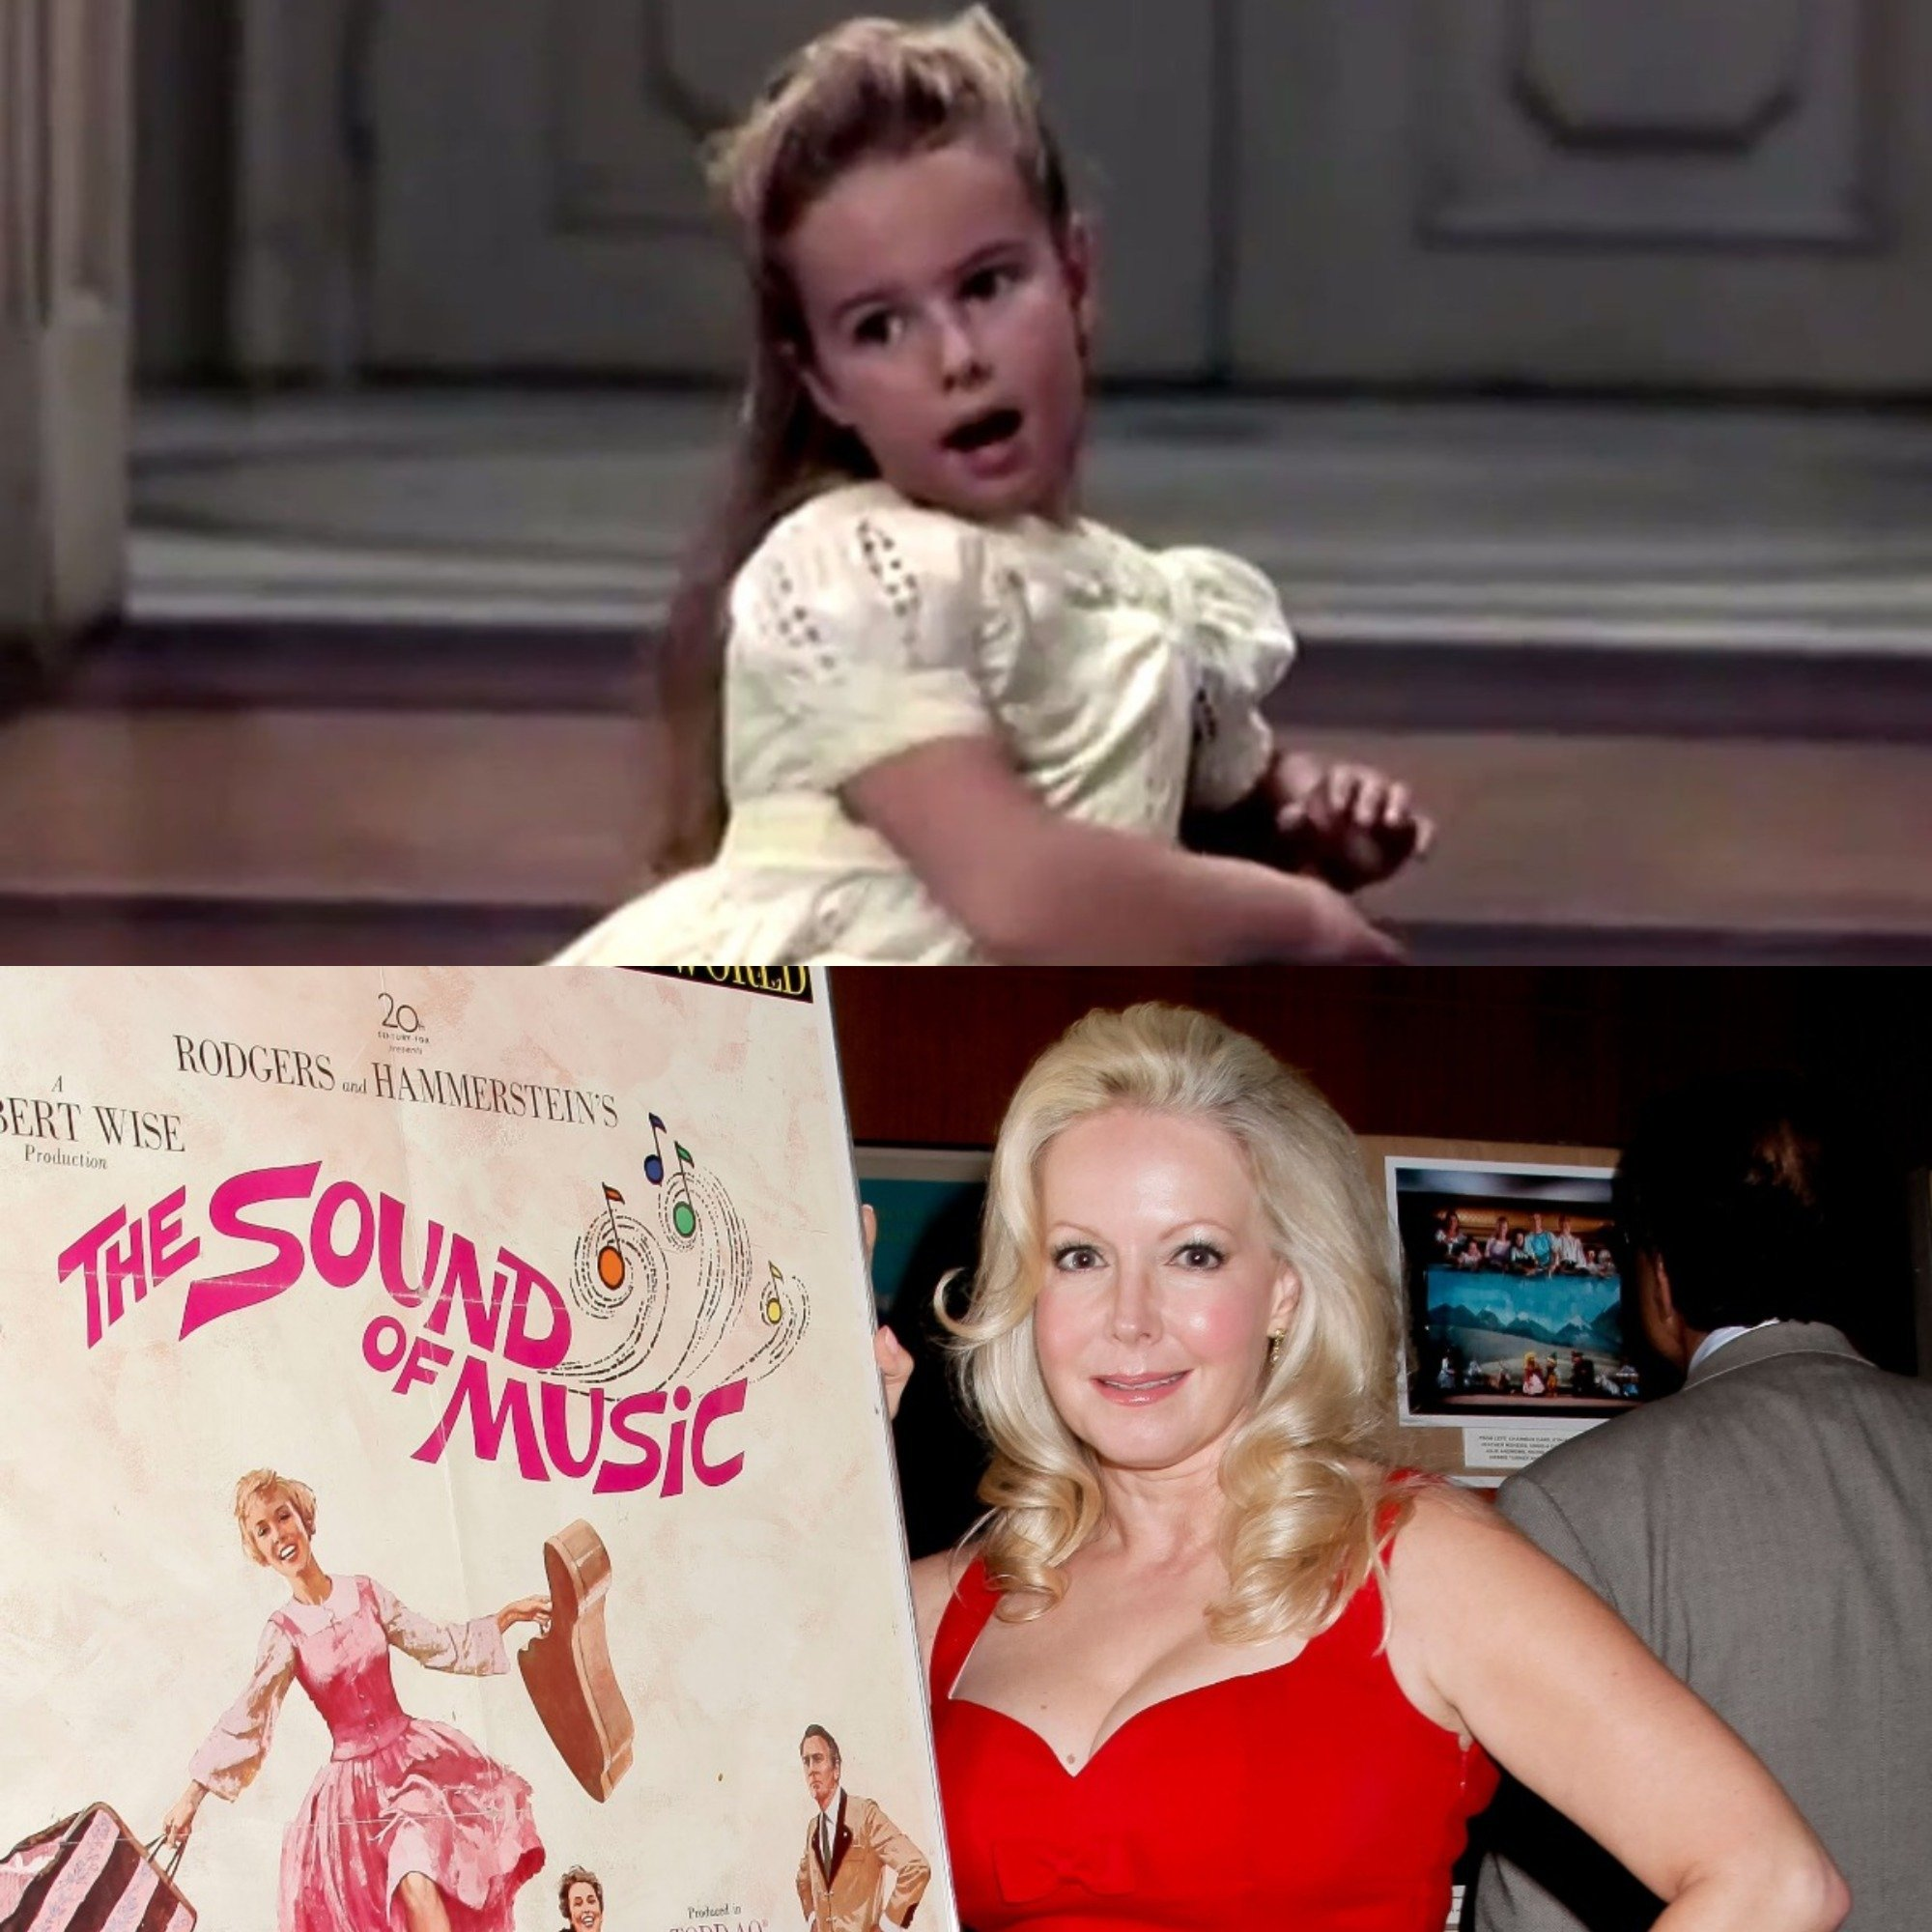 Image credits: 20th Century Studios/The Sound of Music - Getty Images/WireImage/Tibrina Hobson